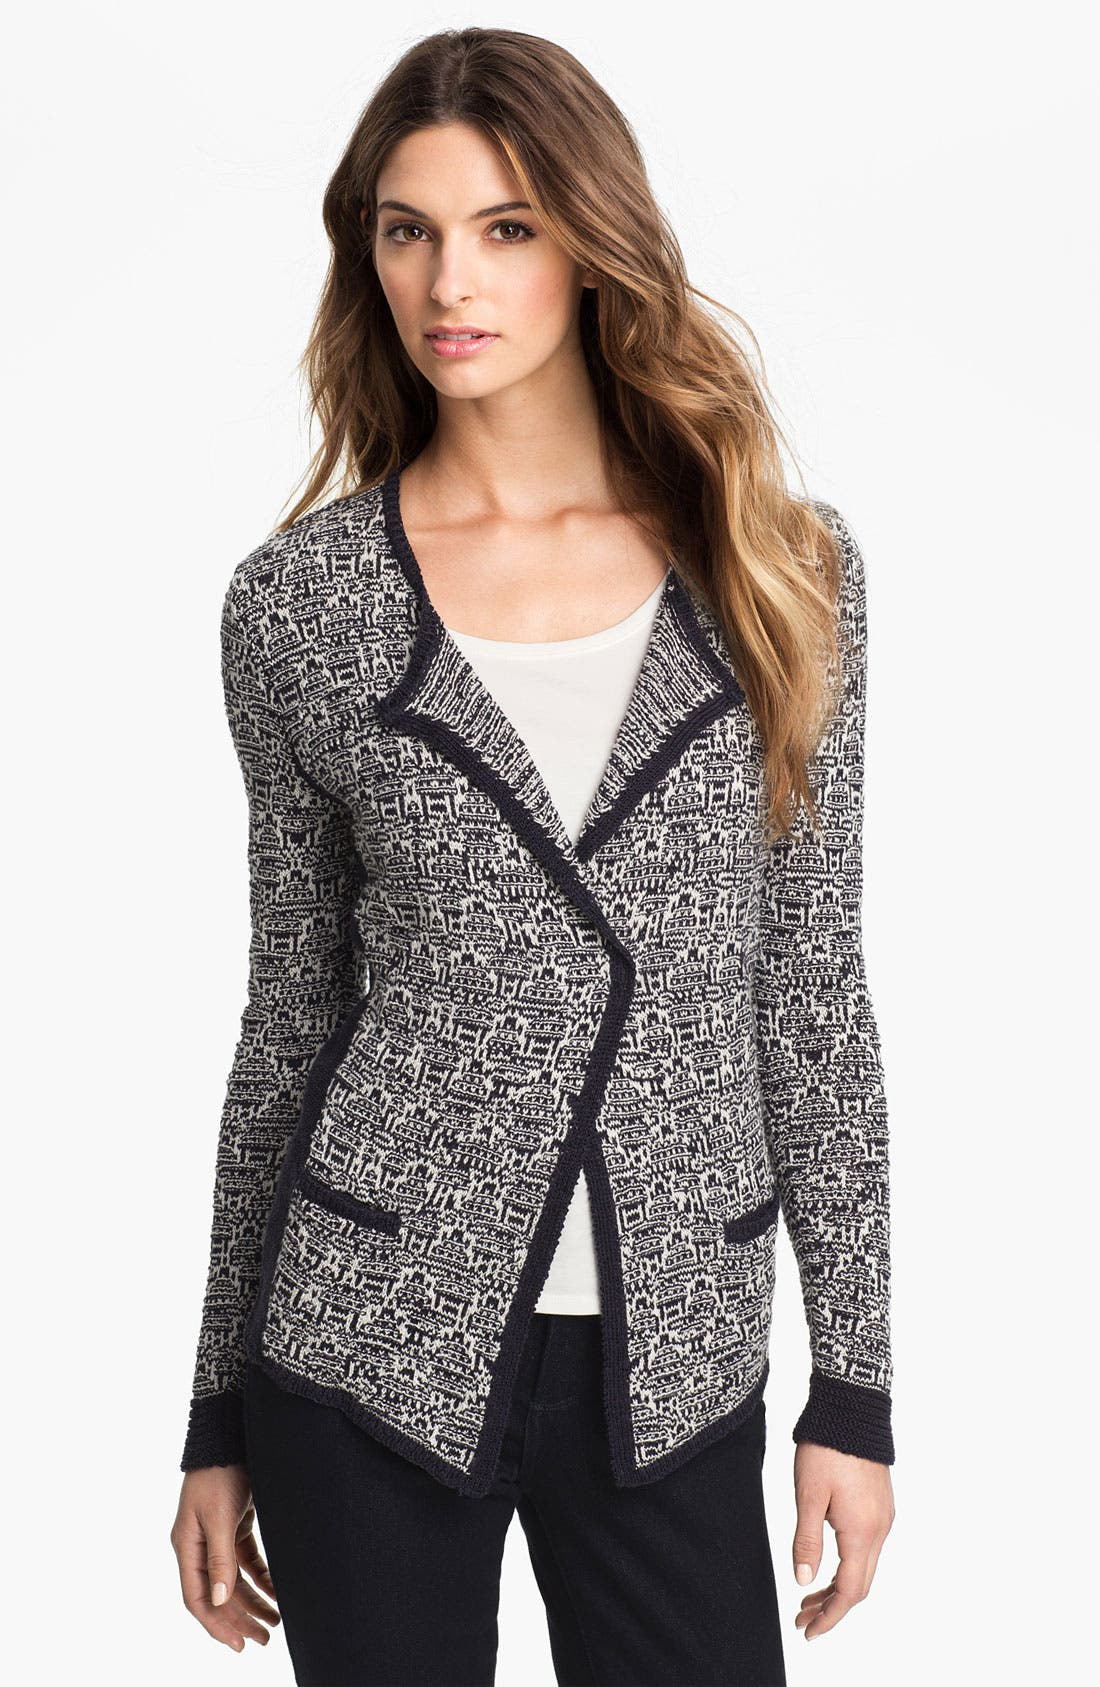 Main Image - Nic + Zoe 'Mixy' Sweater Jacket (Petite)